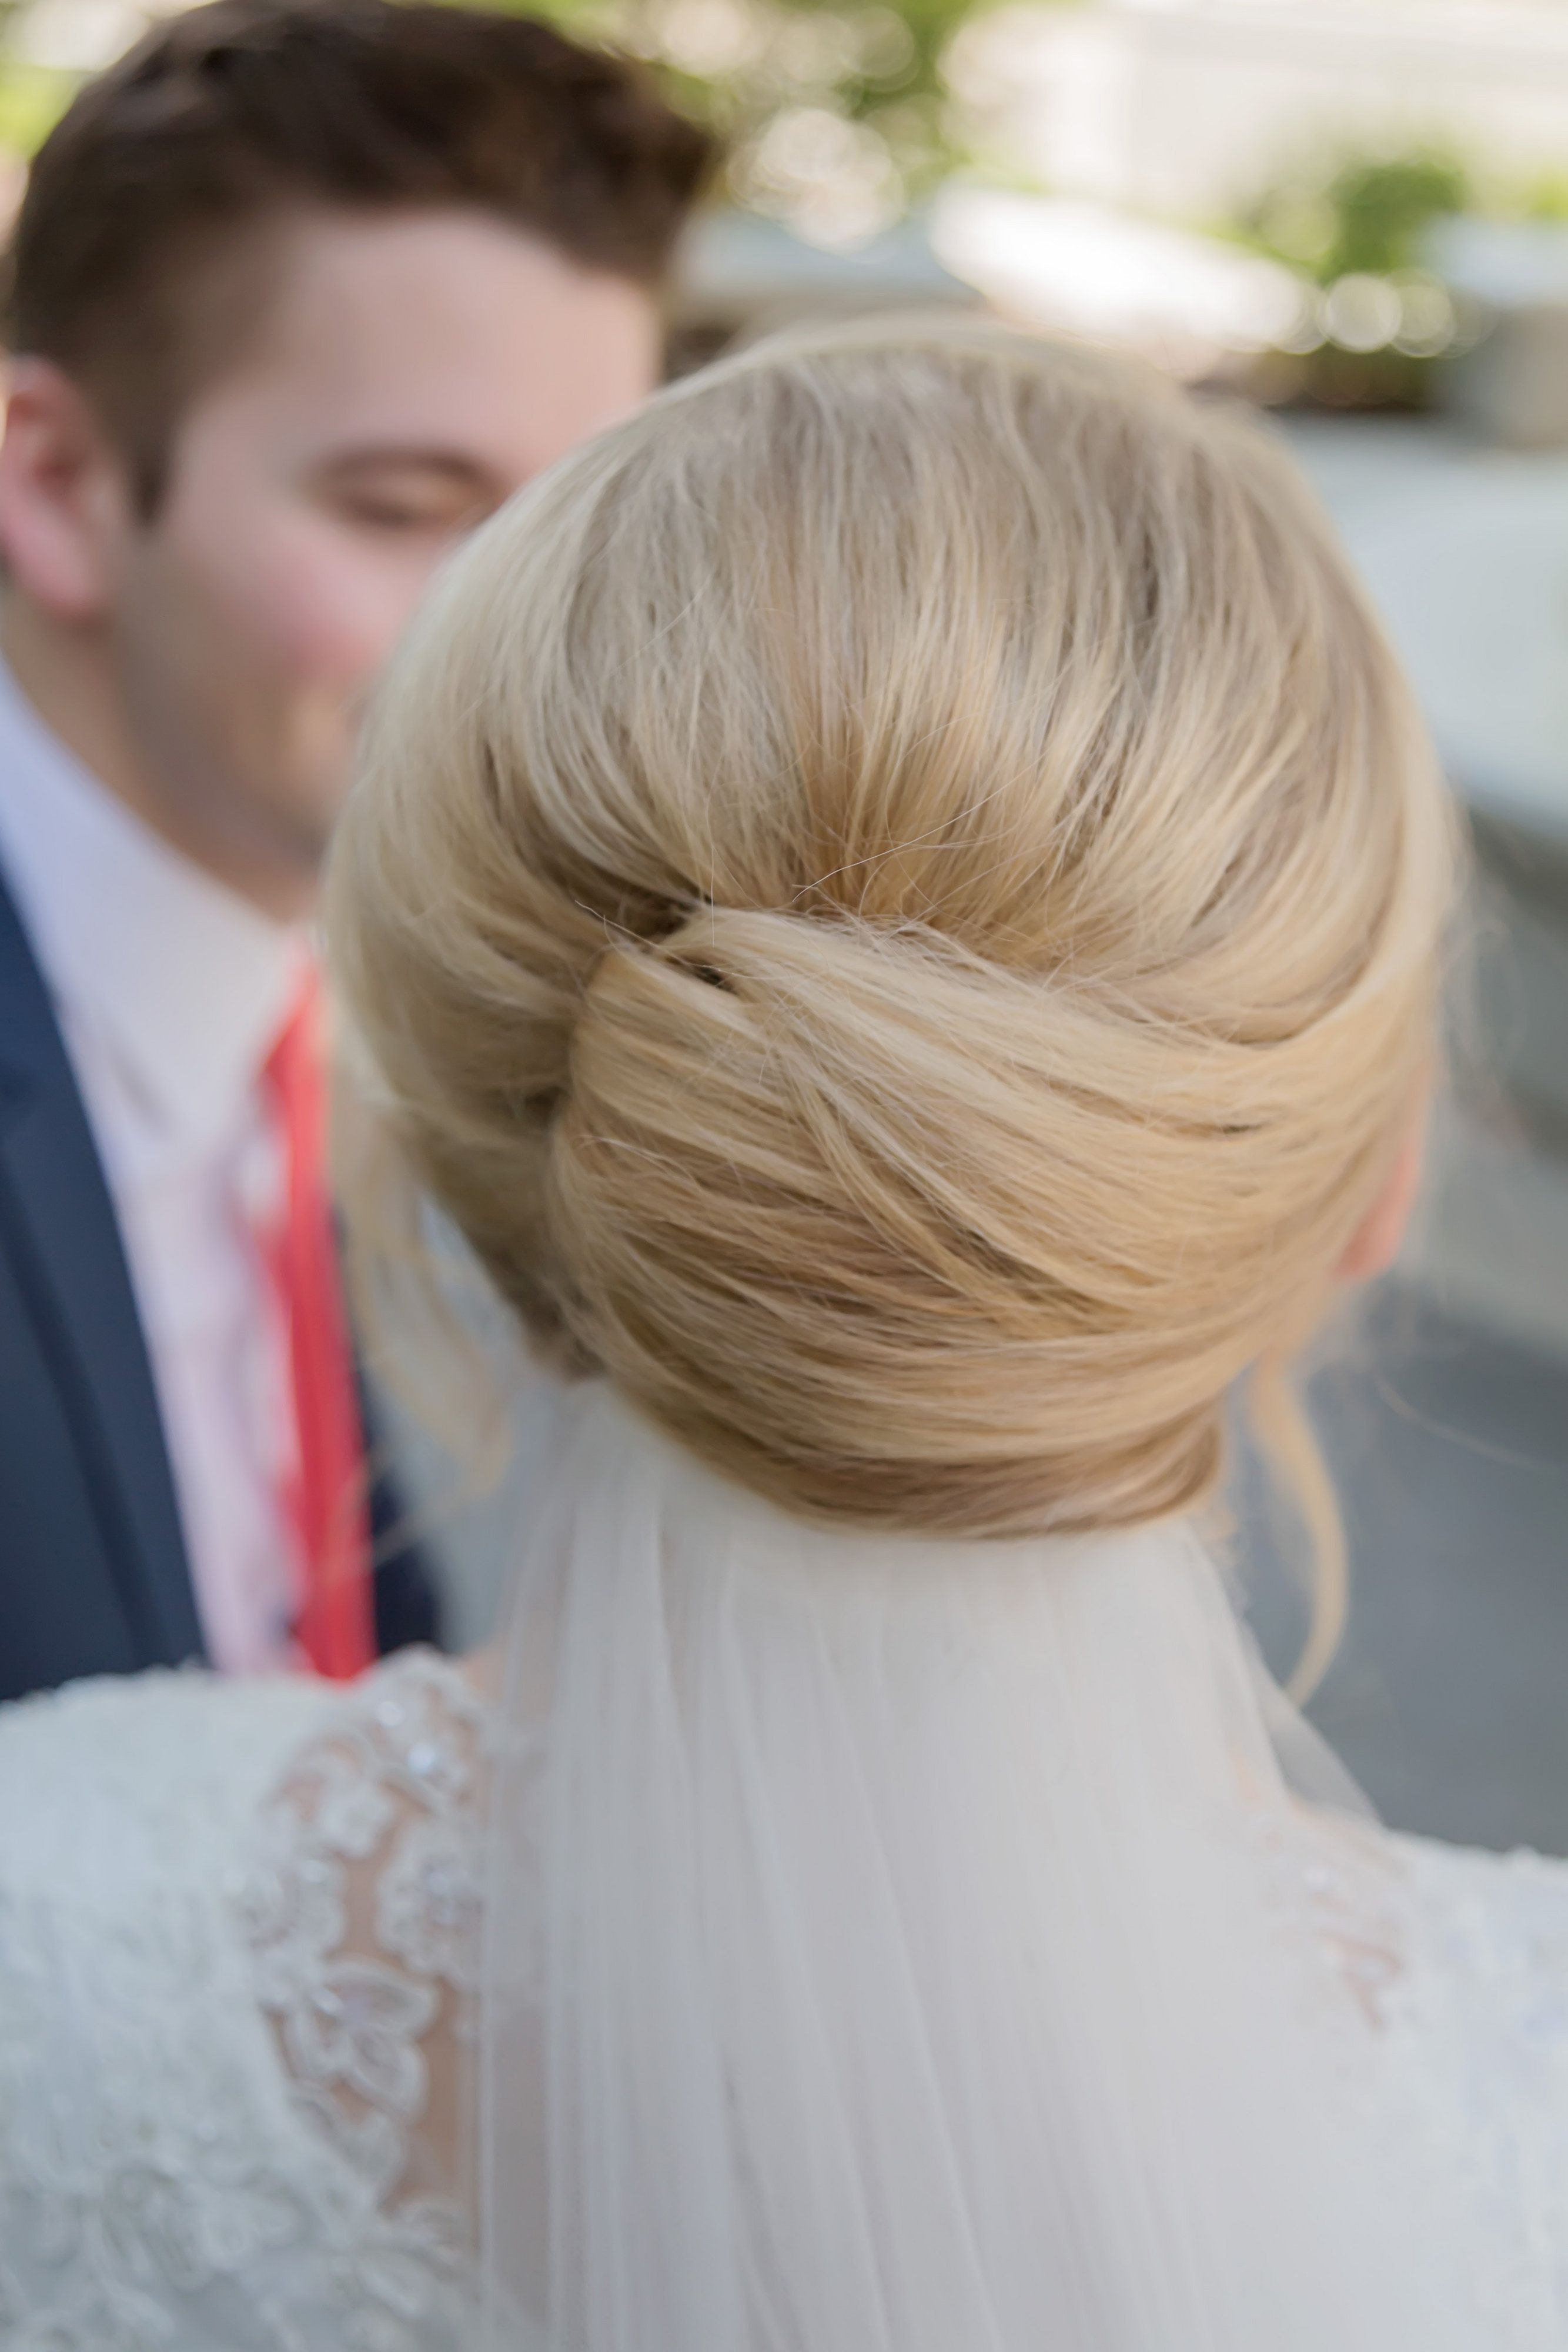 Blonde, sweeping up-do and veil. Perfect wedding hair! Thanks to http://www.redscarlettmakeupartistry.com/ for hair and make-up, and www.rachelnielsenphotography.com for the photography.